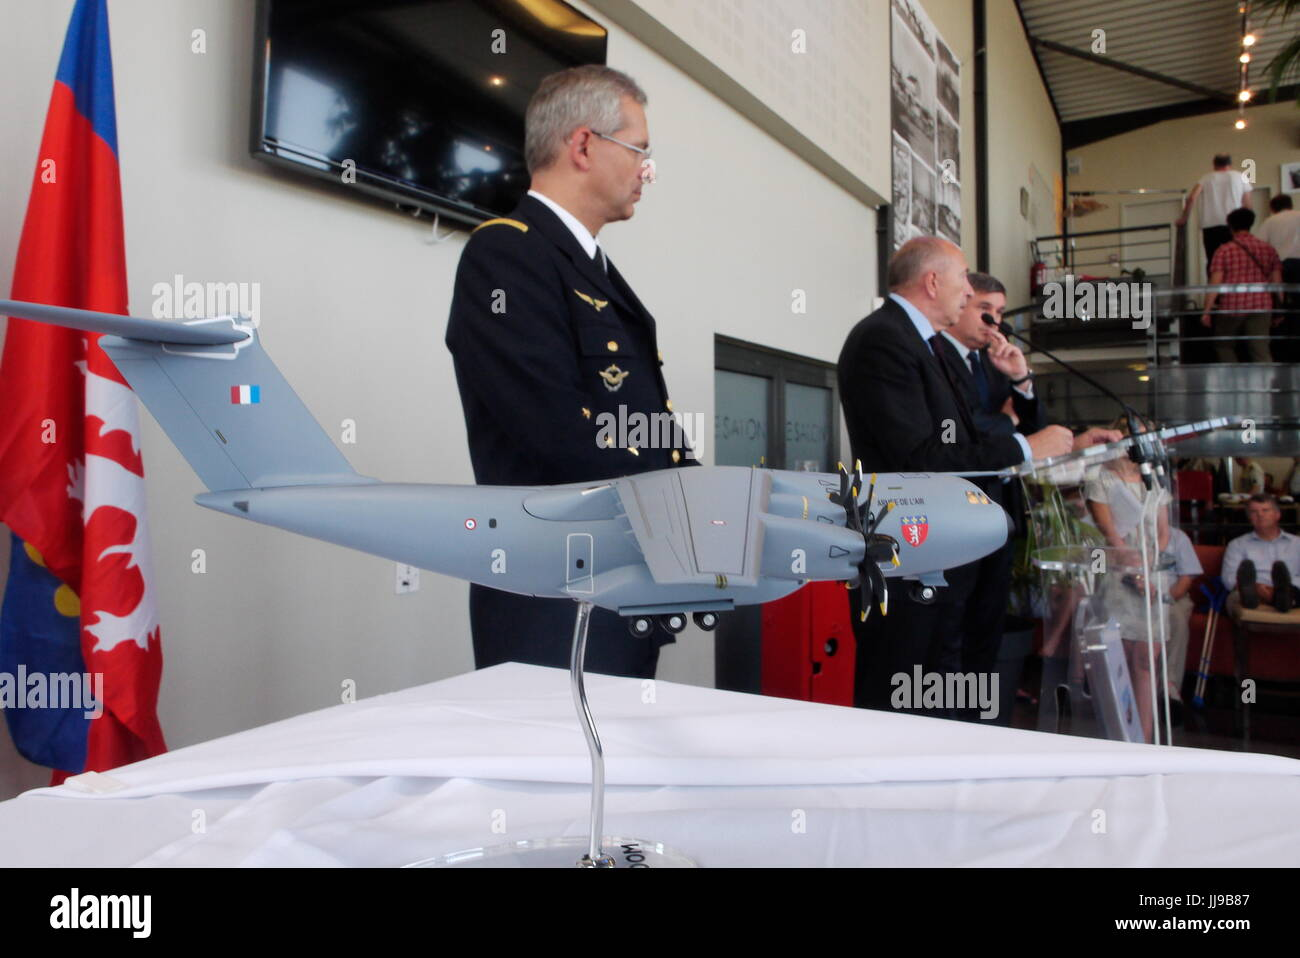 Naming ceremony for new Air Force Airbus A400, Lyon-Bron (France) - Stock Image